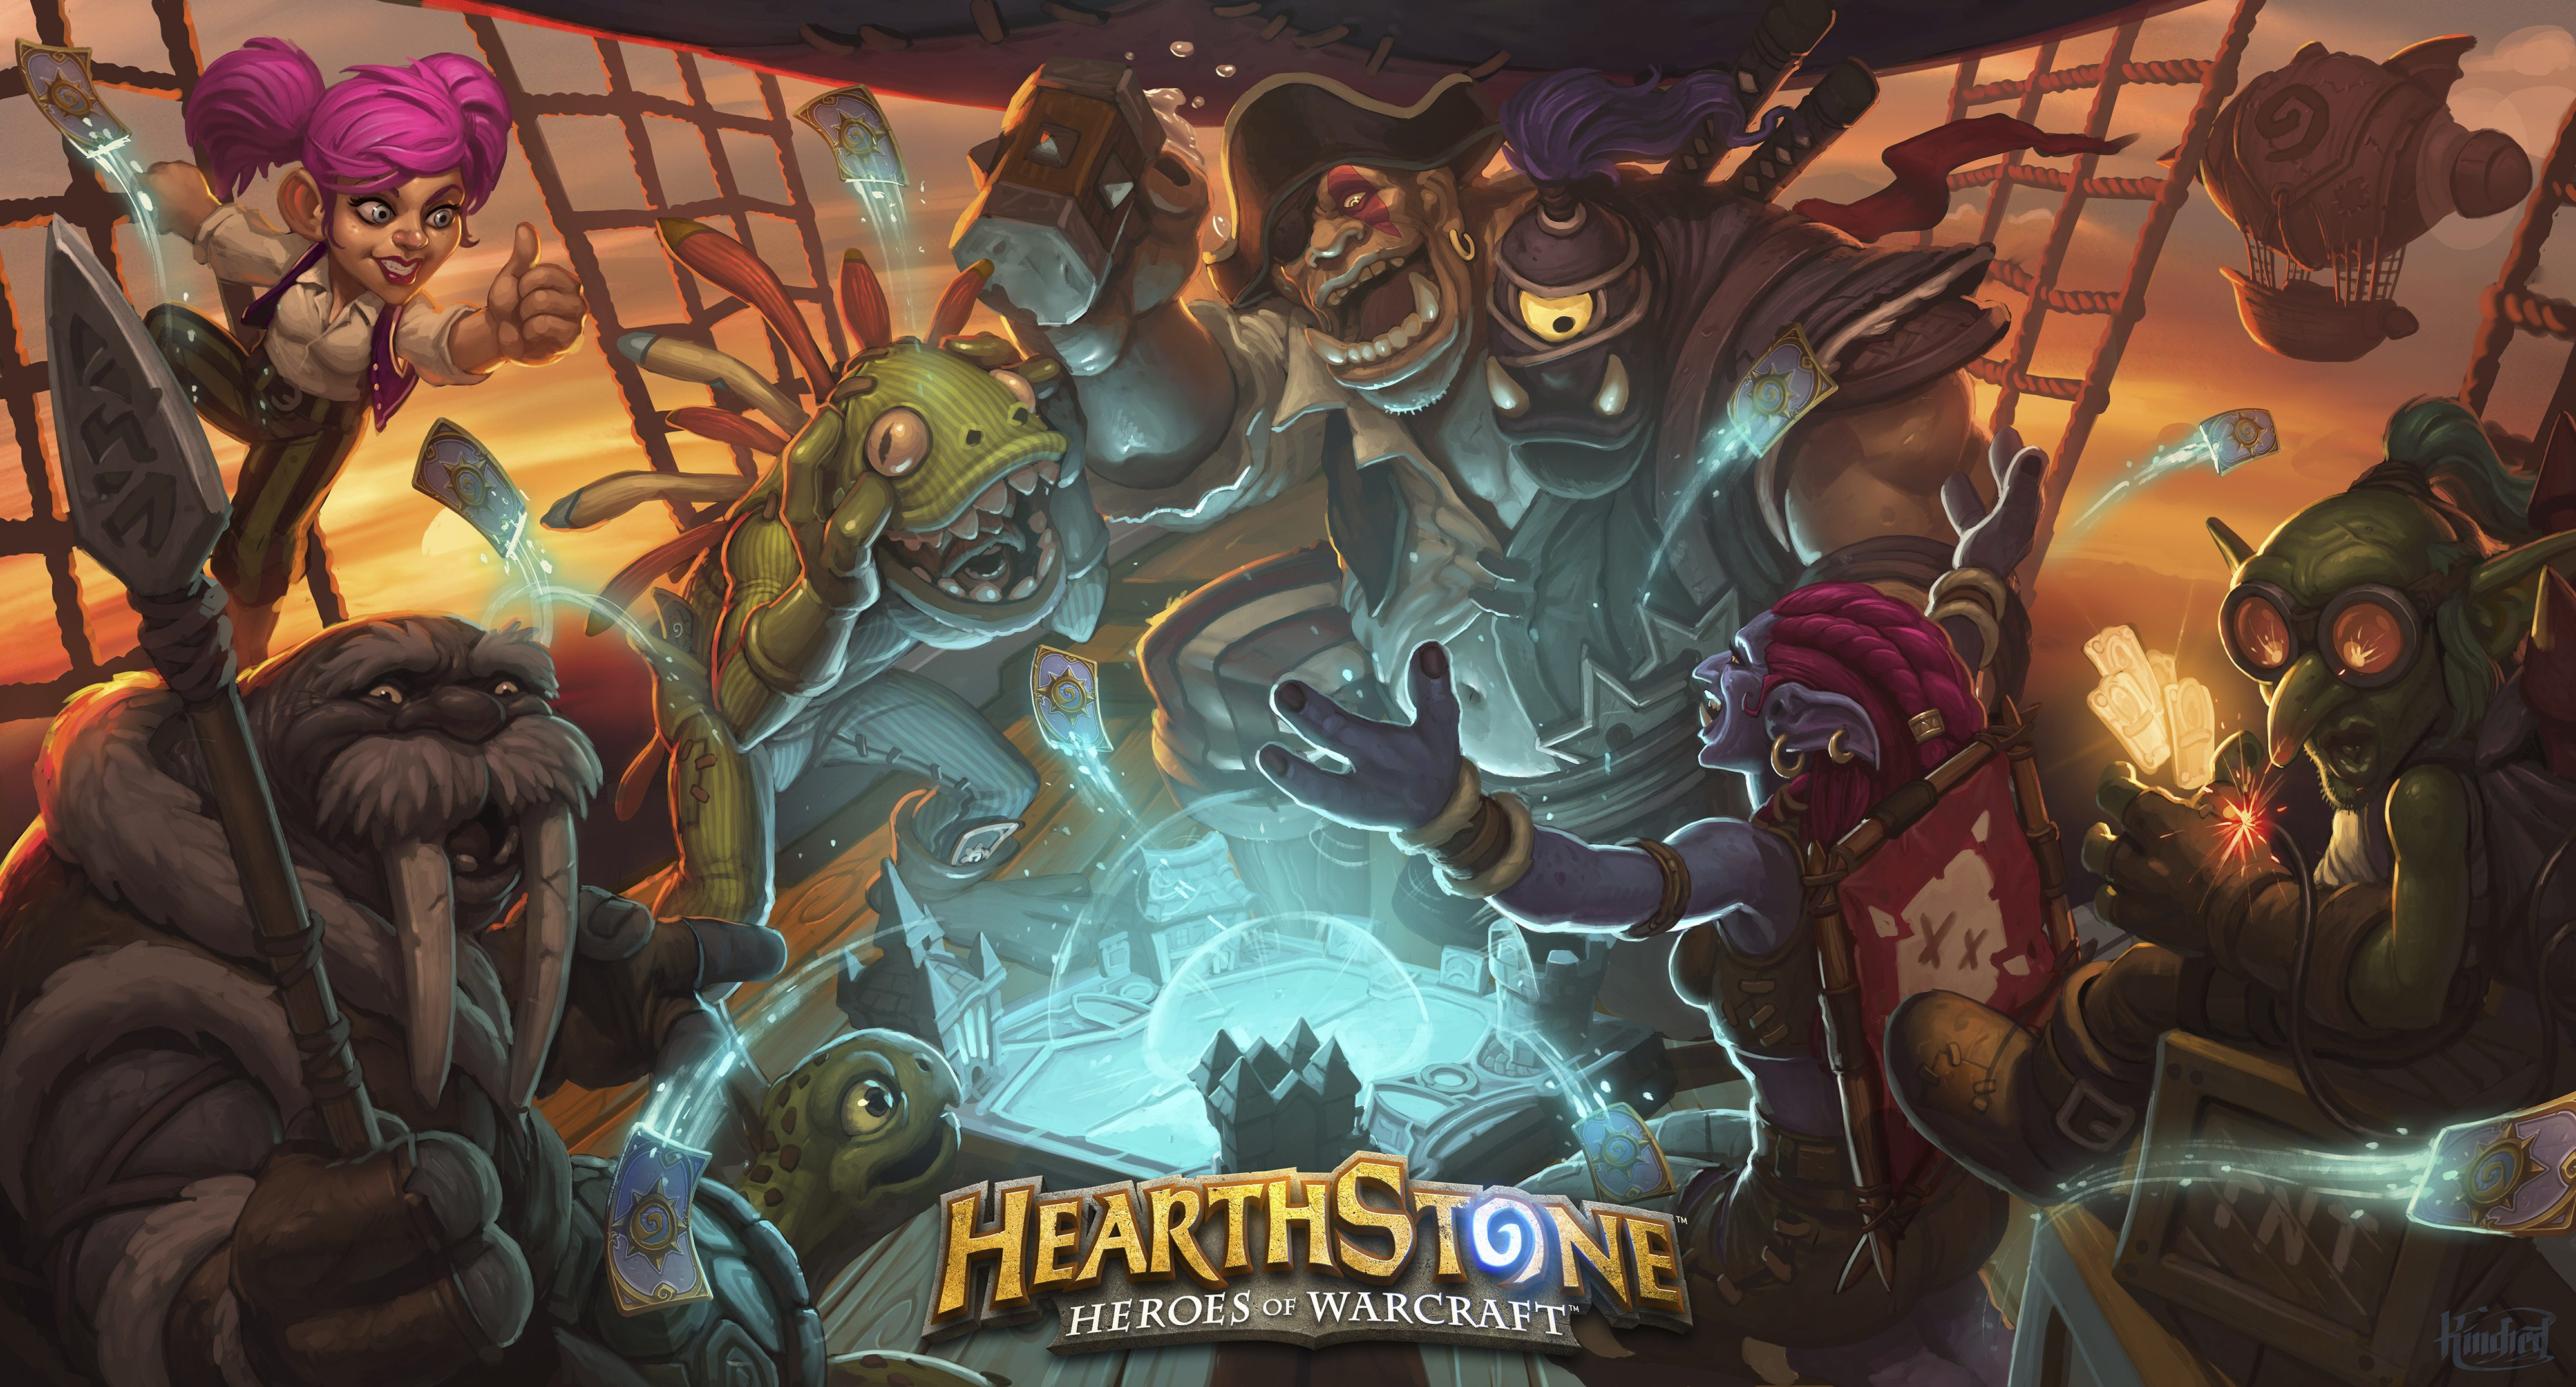 Hearthstone Heroes of Warcraft Goes Fully Mobile Gaming Cypher